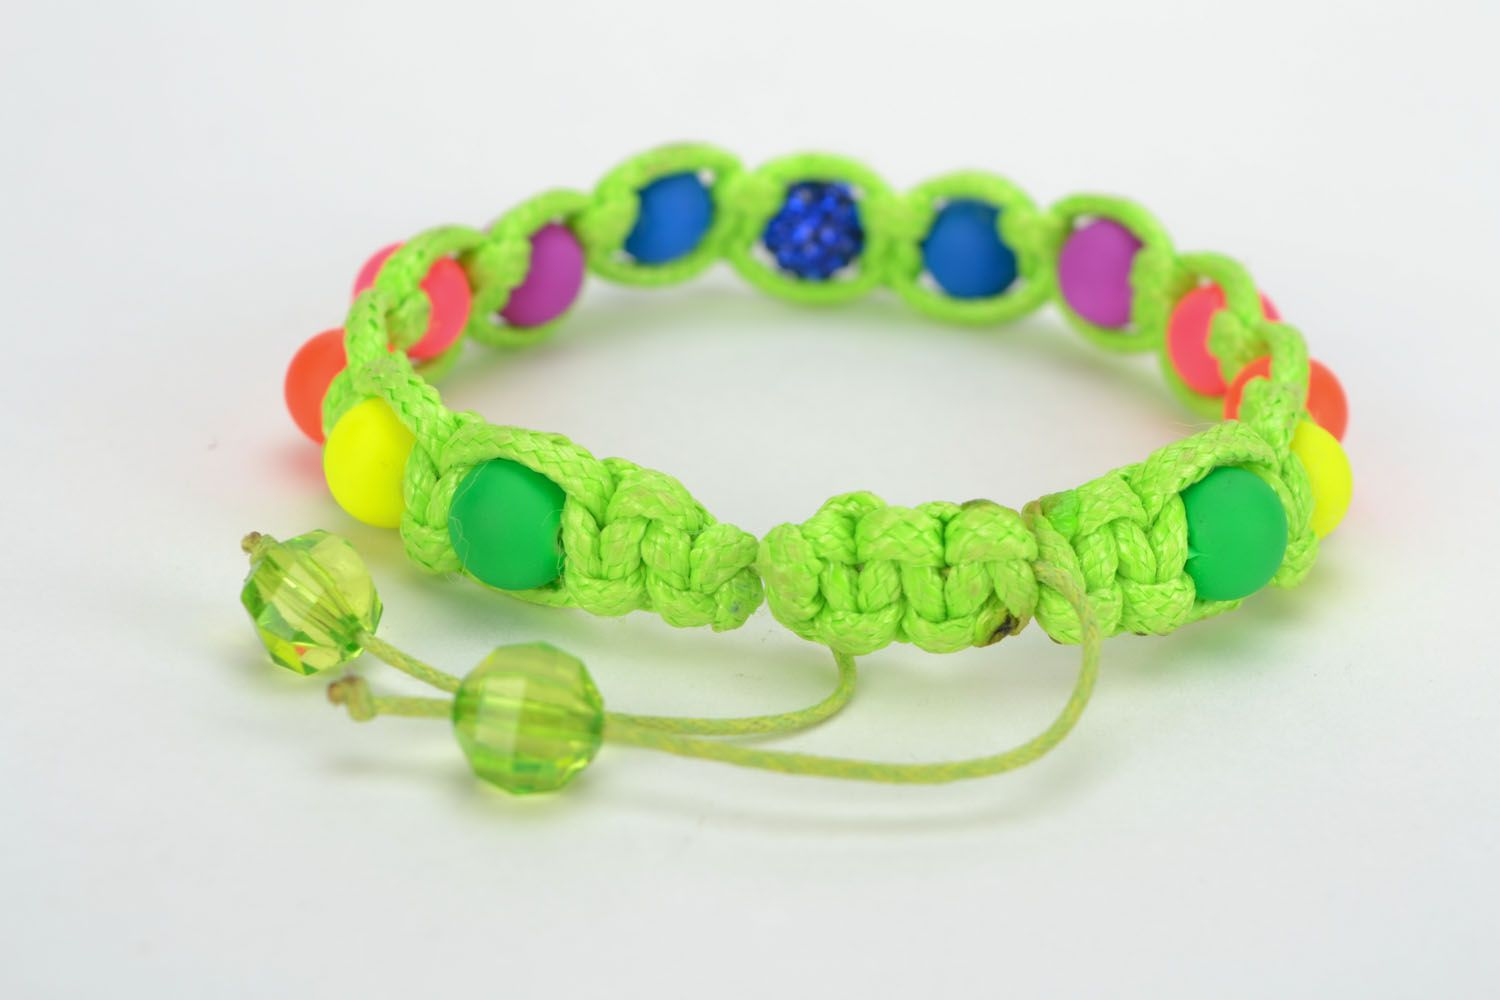 Bracelet woven of colorful beads photo 5